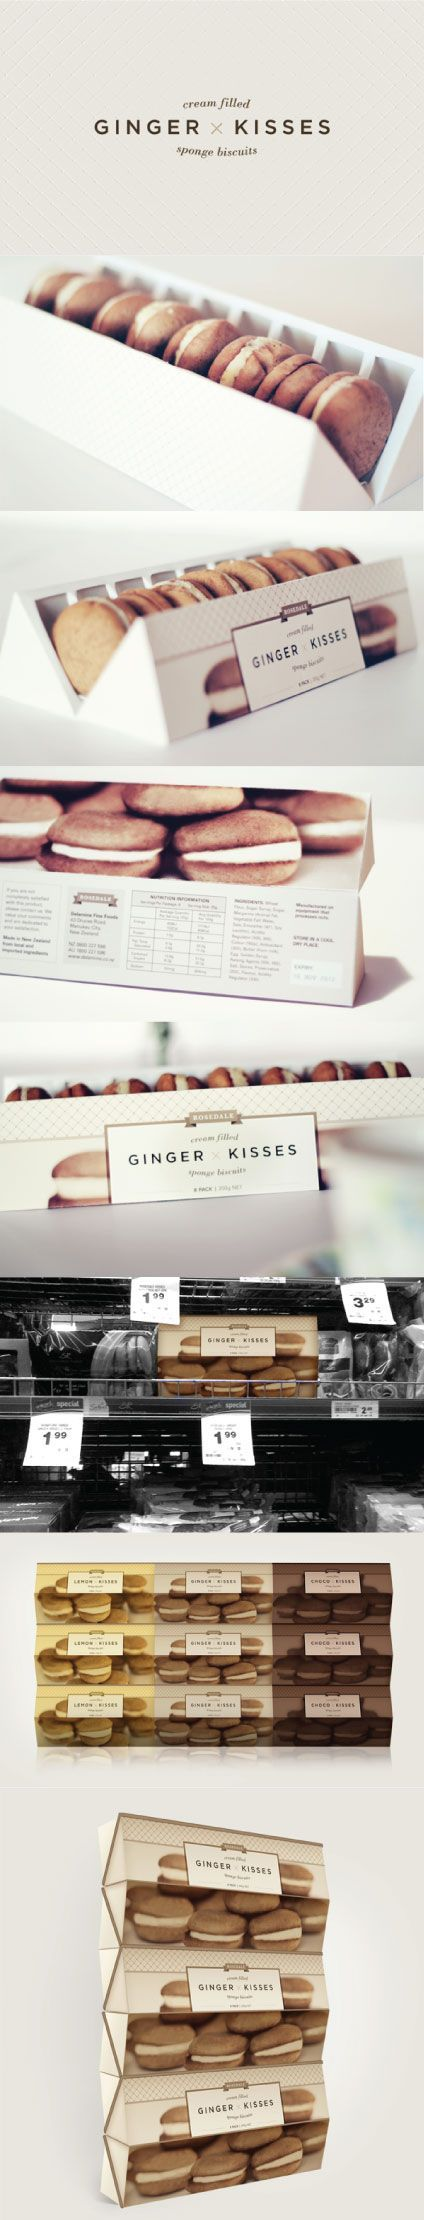 Ginger Kisses Packaging Re-design by Veronica Cordero